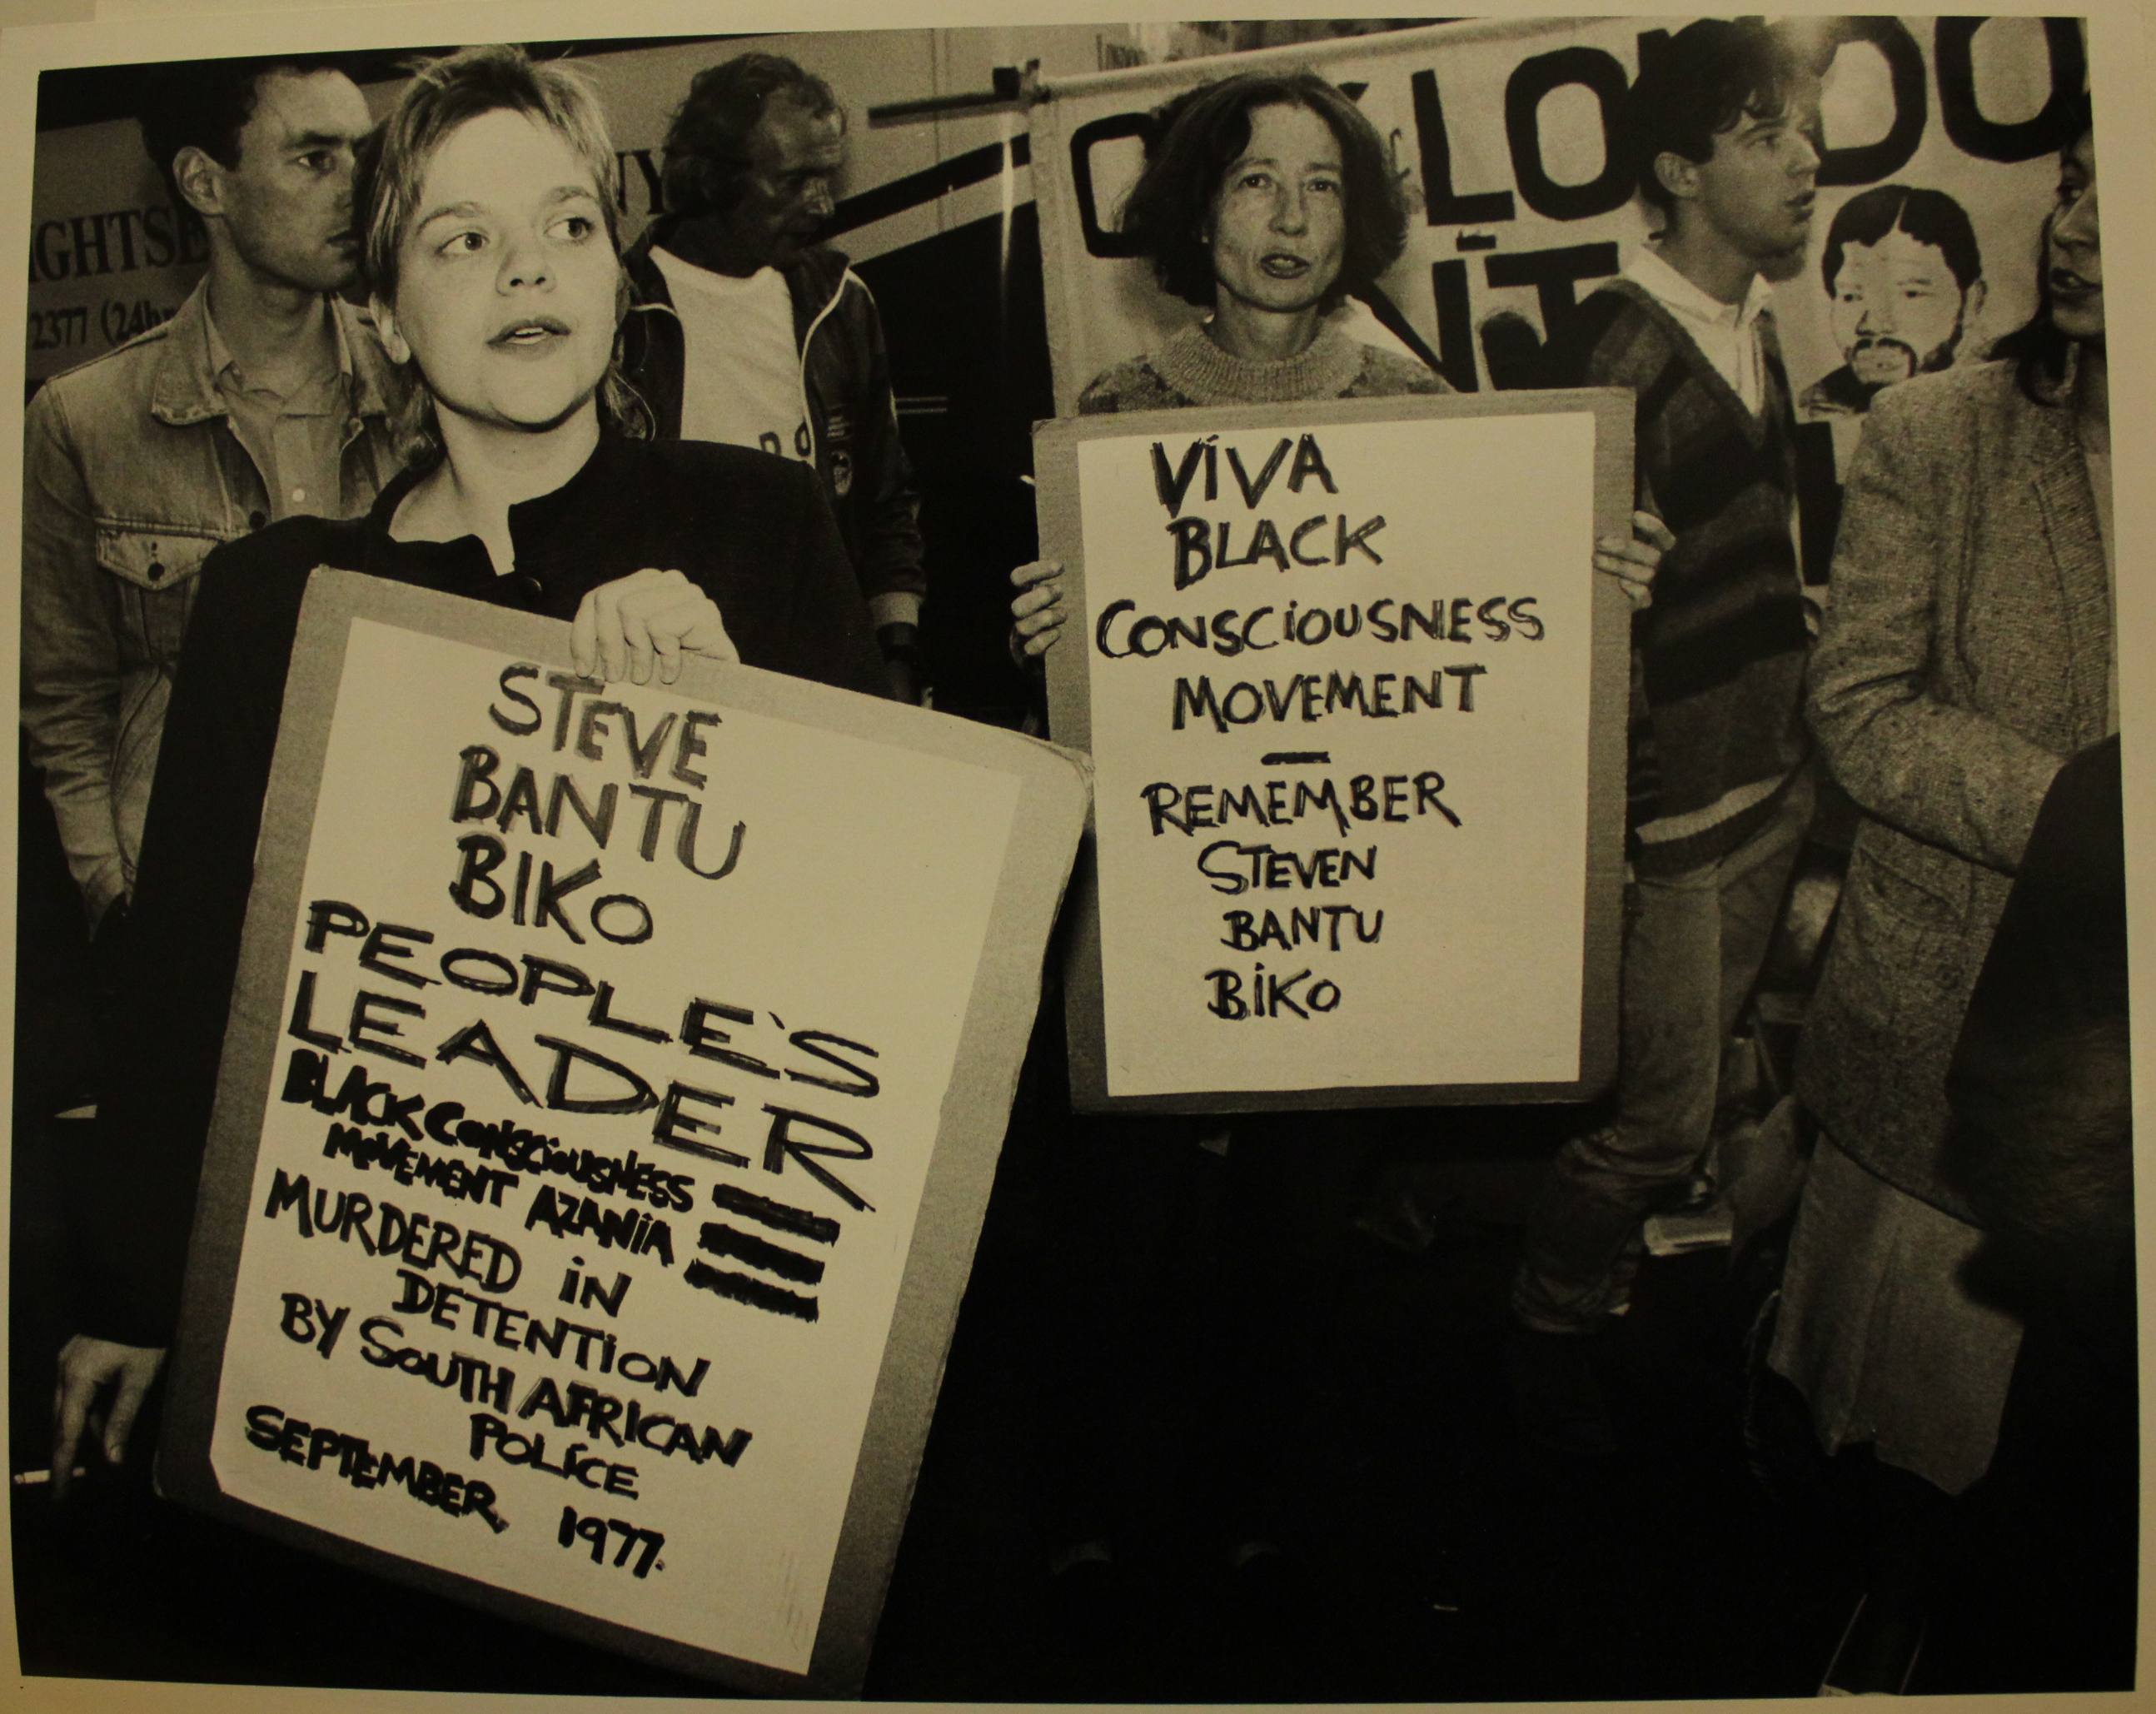 essays on black consciousness movement The black consciousness movement of south africa instigated a social, cultural, and political awakening in the country in the 1970s by the mid-1960s, major anti-apartheid organizations in south africa such as the african national congress and pan-africanist congress had been virtually silenced by government repression.